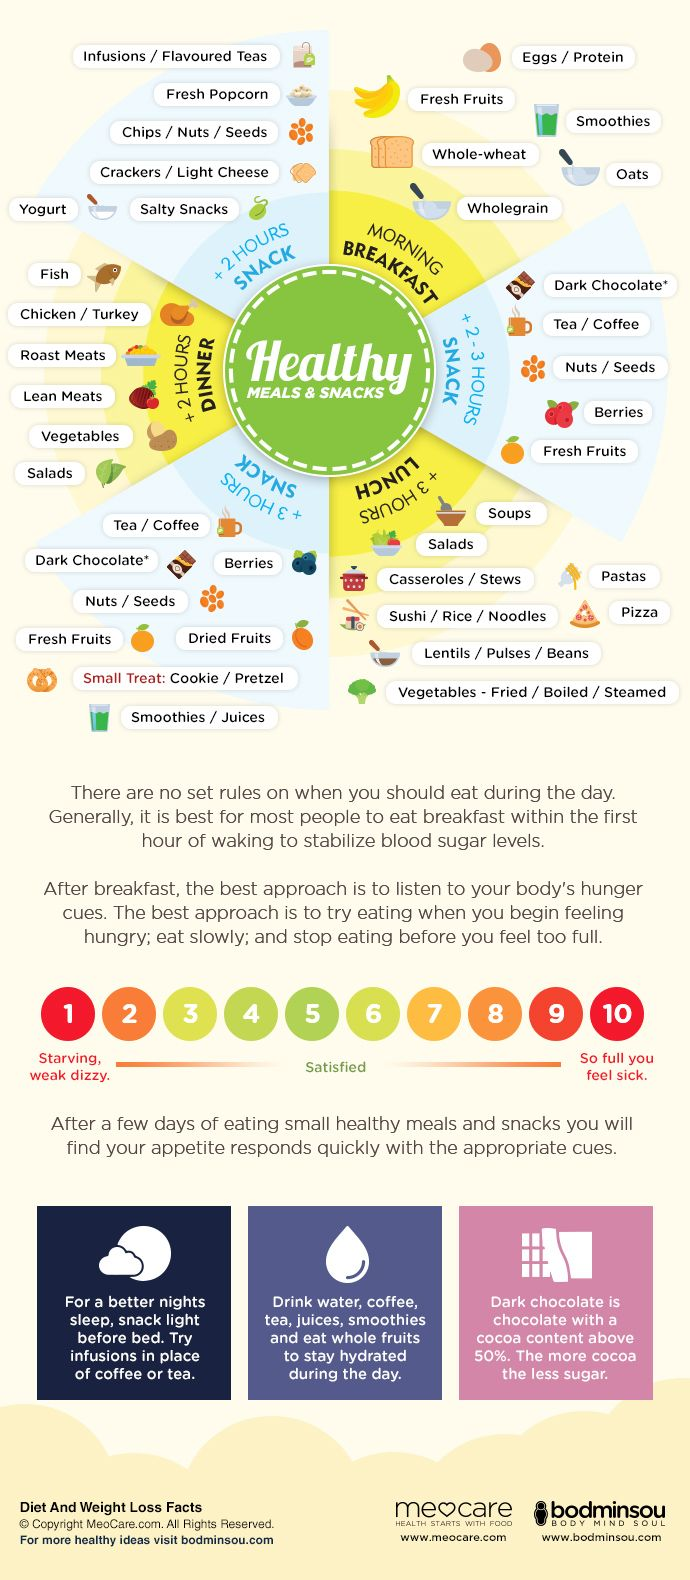 Meal and snack frequency – How often should I eat? There are no set rules on when you should eat during the day. Generally, it is best for most people to eat breakfast within the first hour of waking to stabilize blood sugar and refuel the body after several hours of not eating due to sleep. After breakfast, the best approach is to listen to your body's hunger cues.